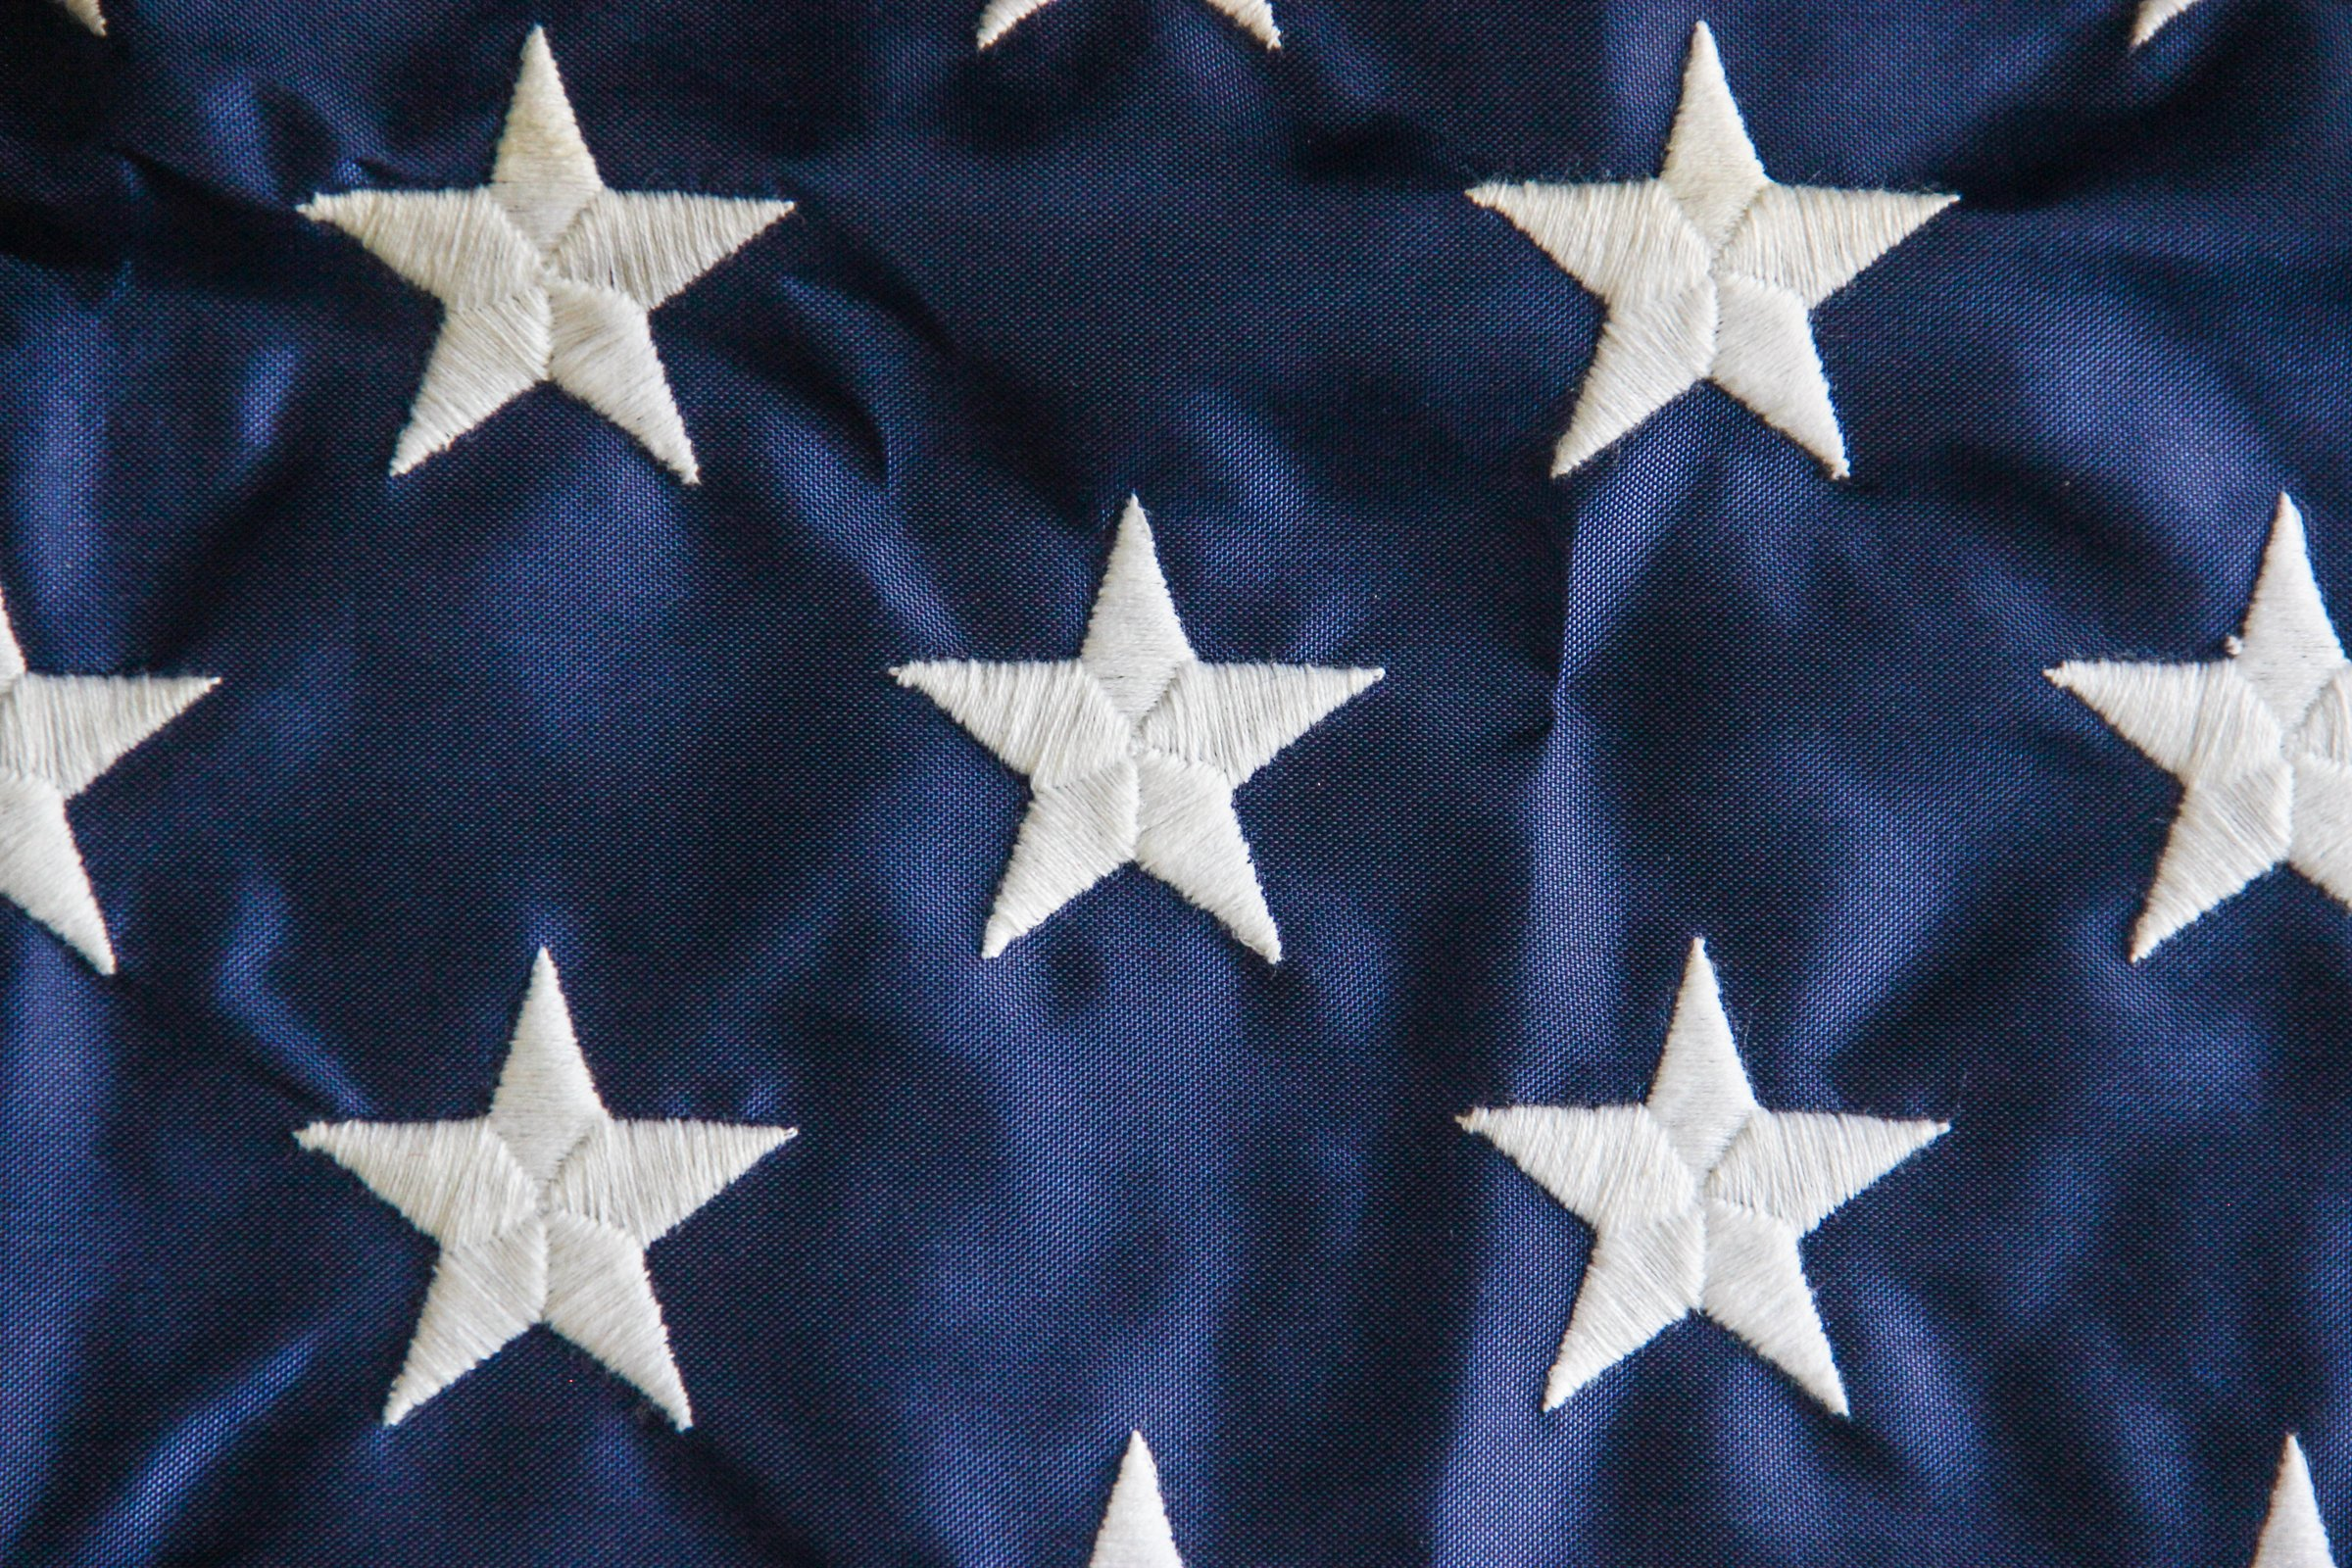 858cef2c67c Free Stock Photo of Close Up of Stars on American Flag